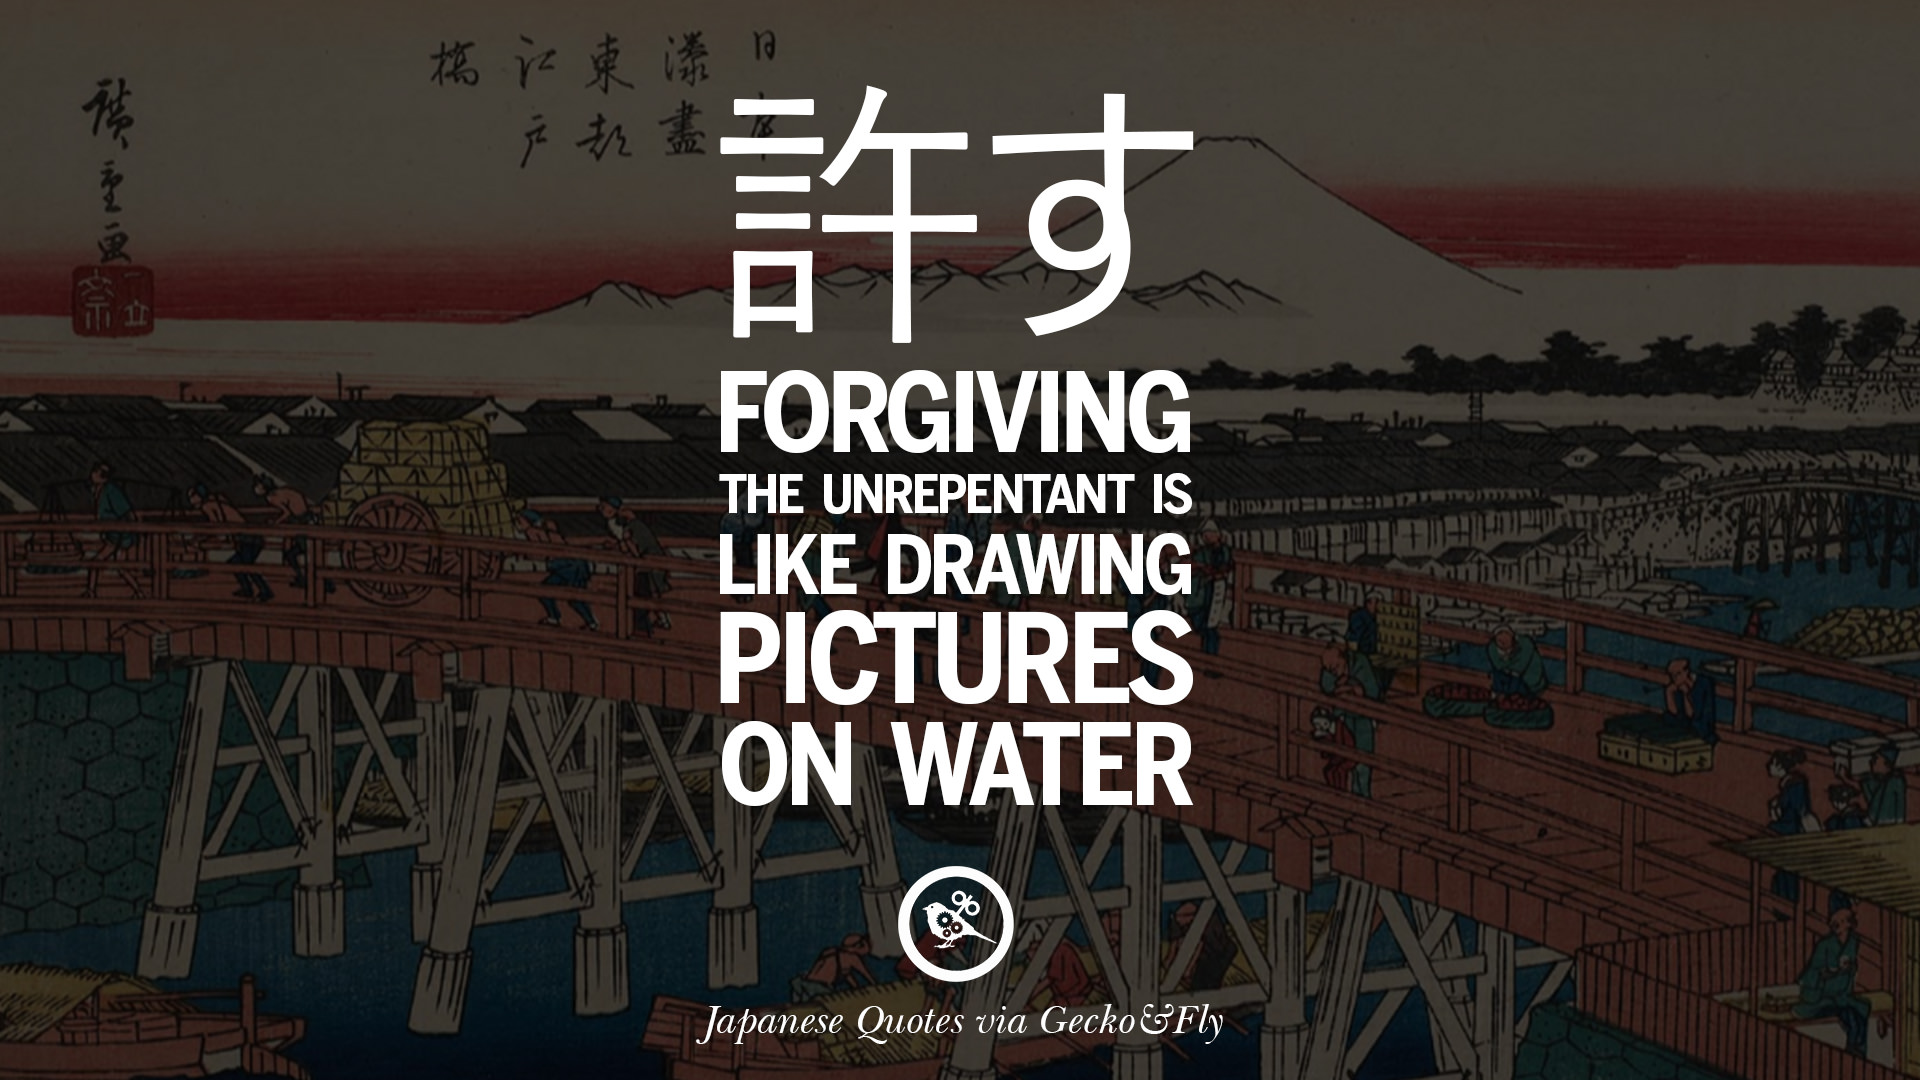 forgiving the unrepentant is like drawing pictures on water